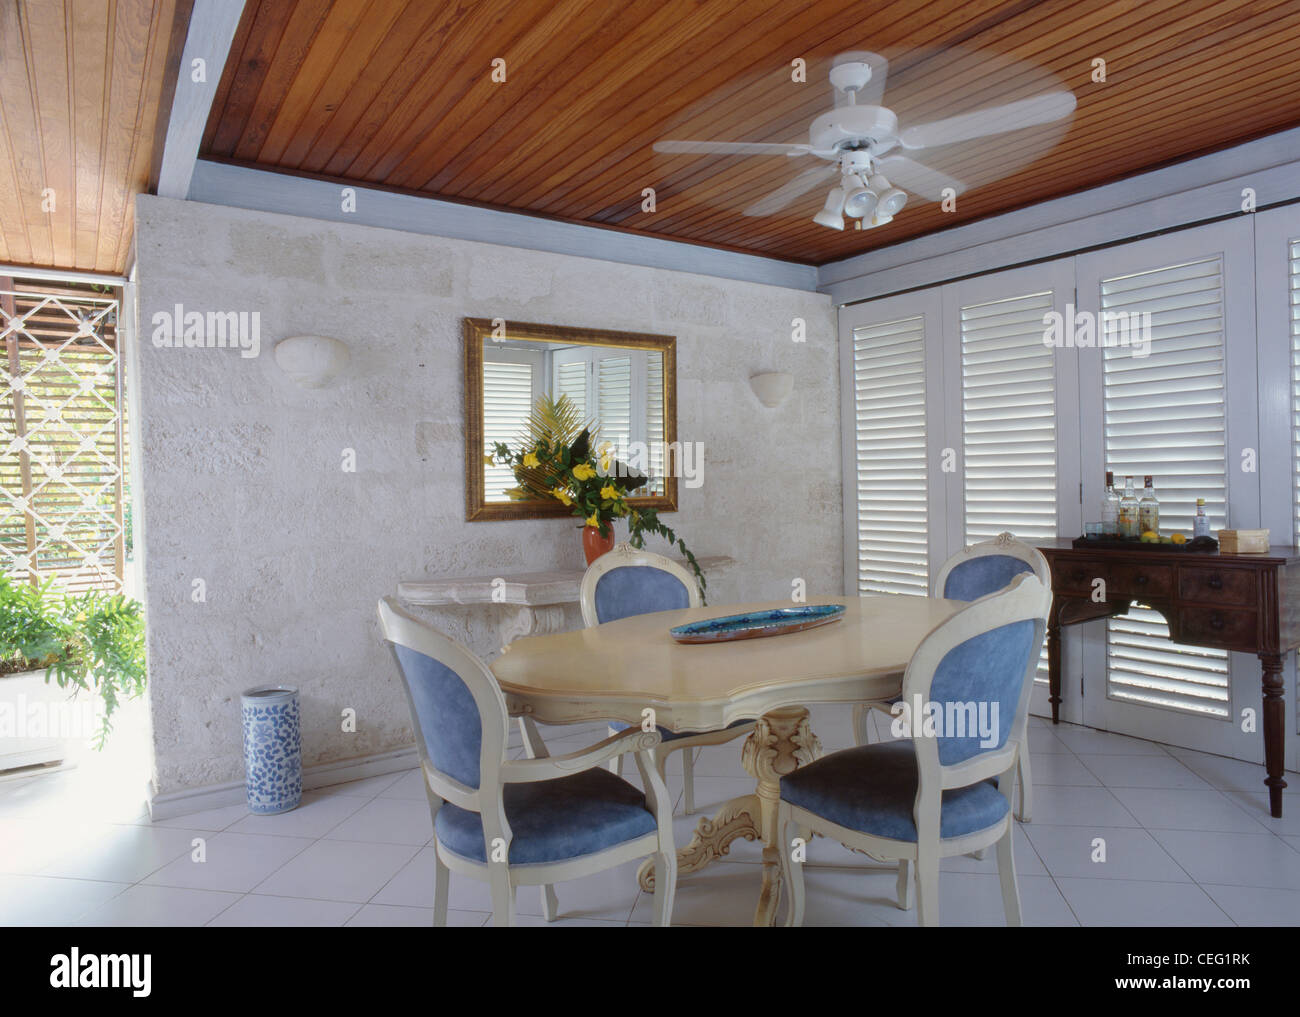 Ceiling fan above cream table and traditional blue ...